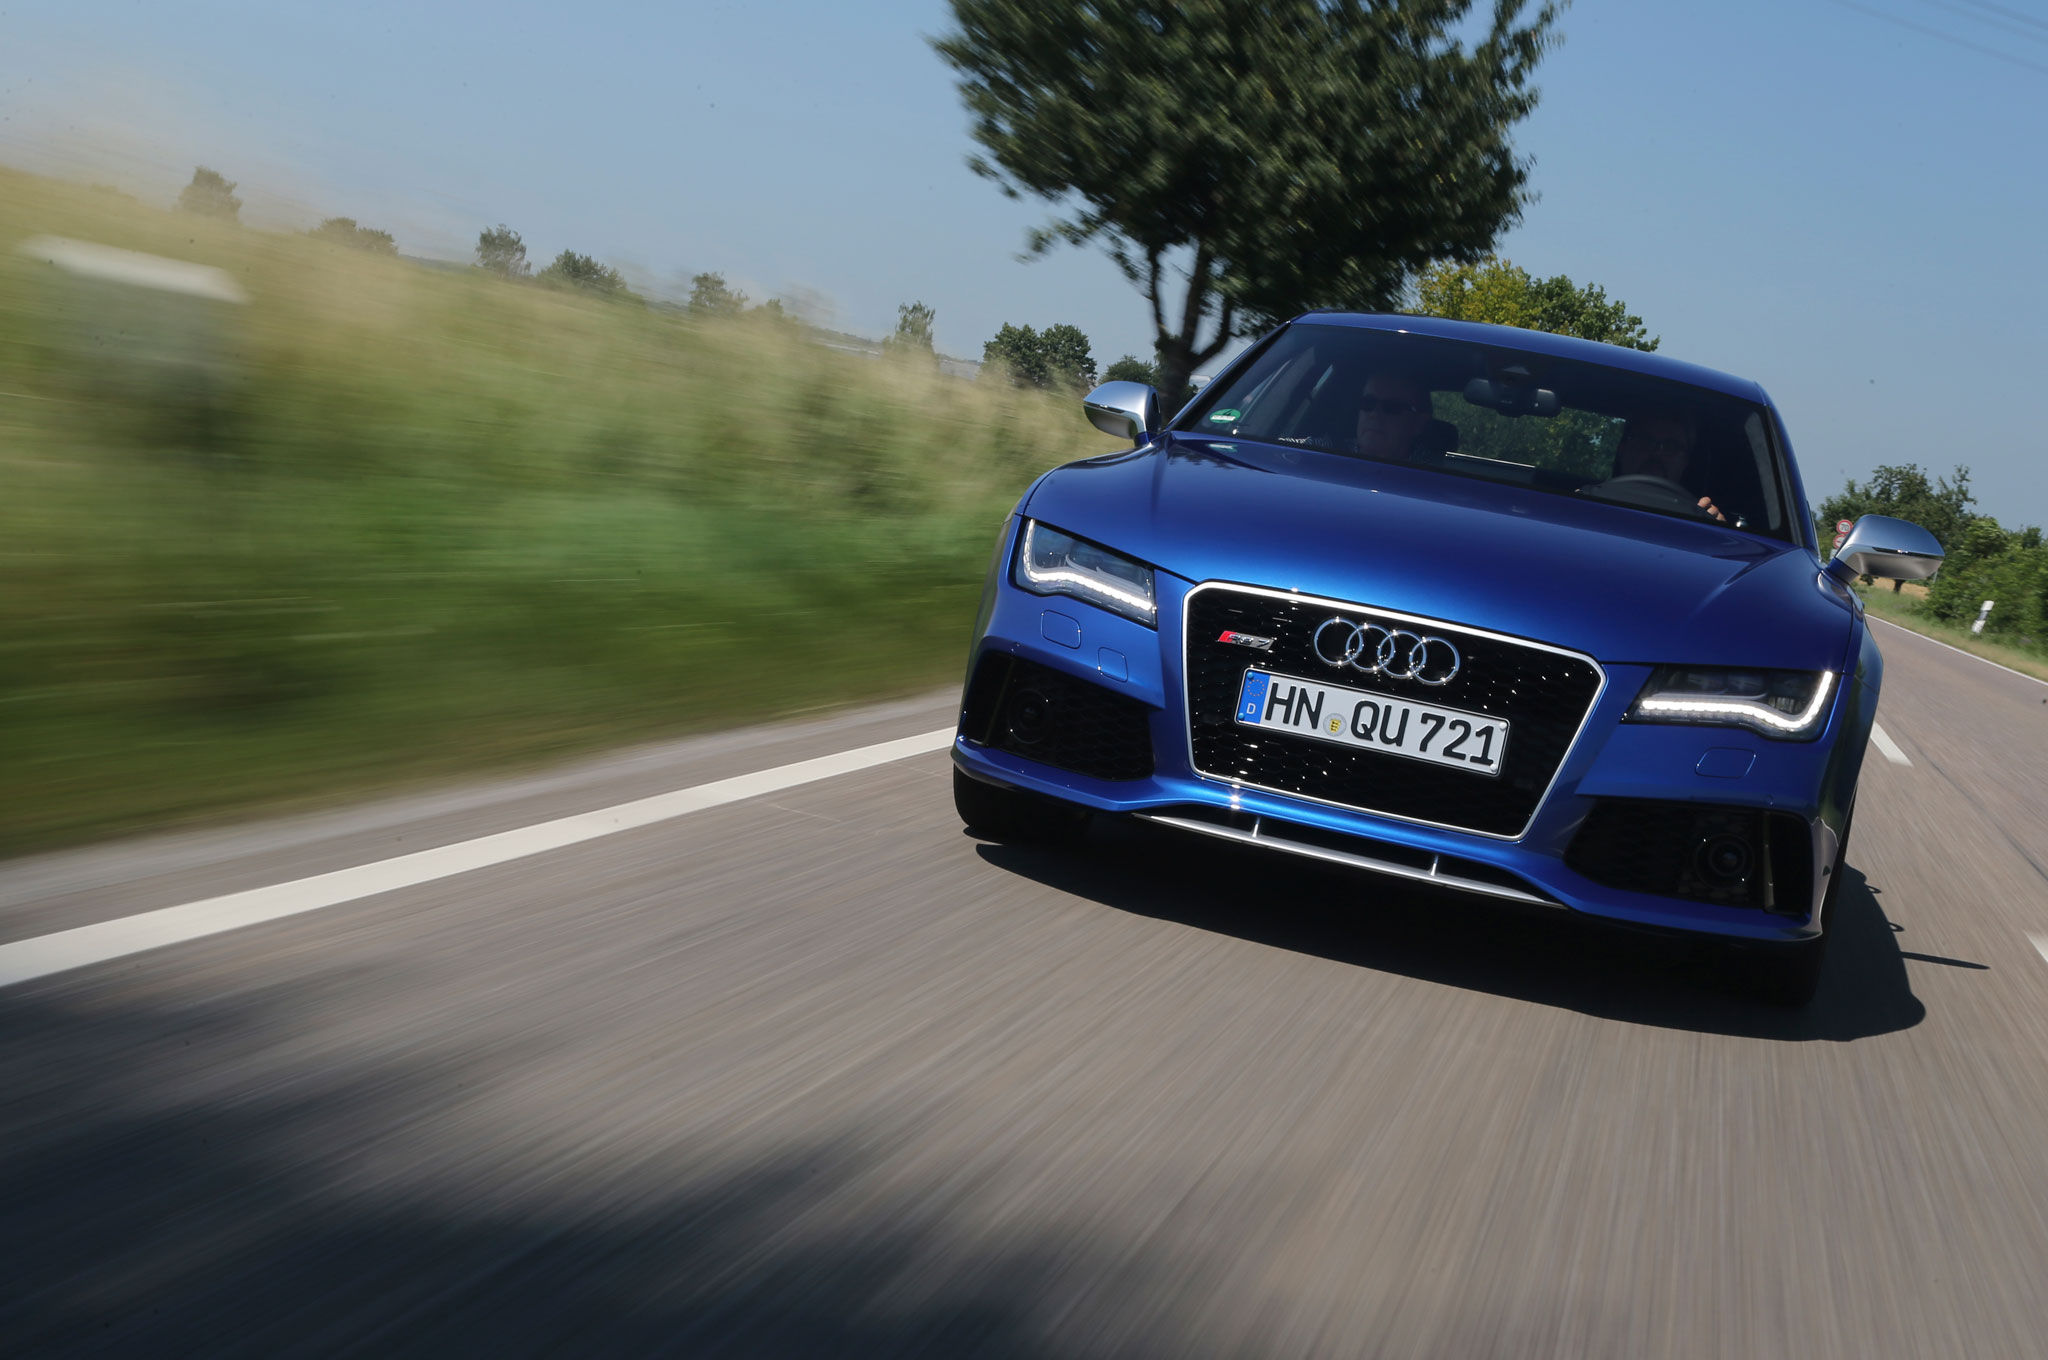 2014 Audi RS7 Front View1